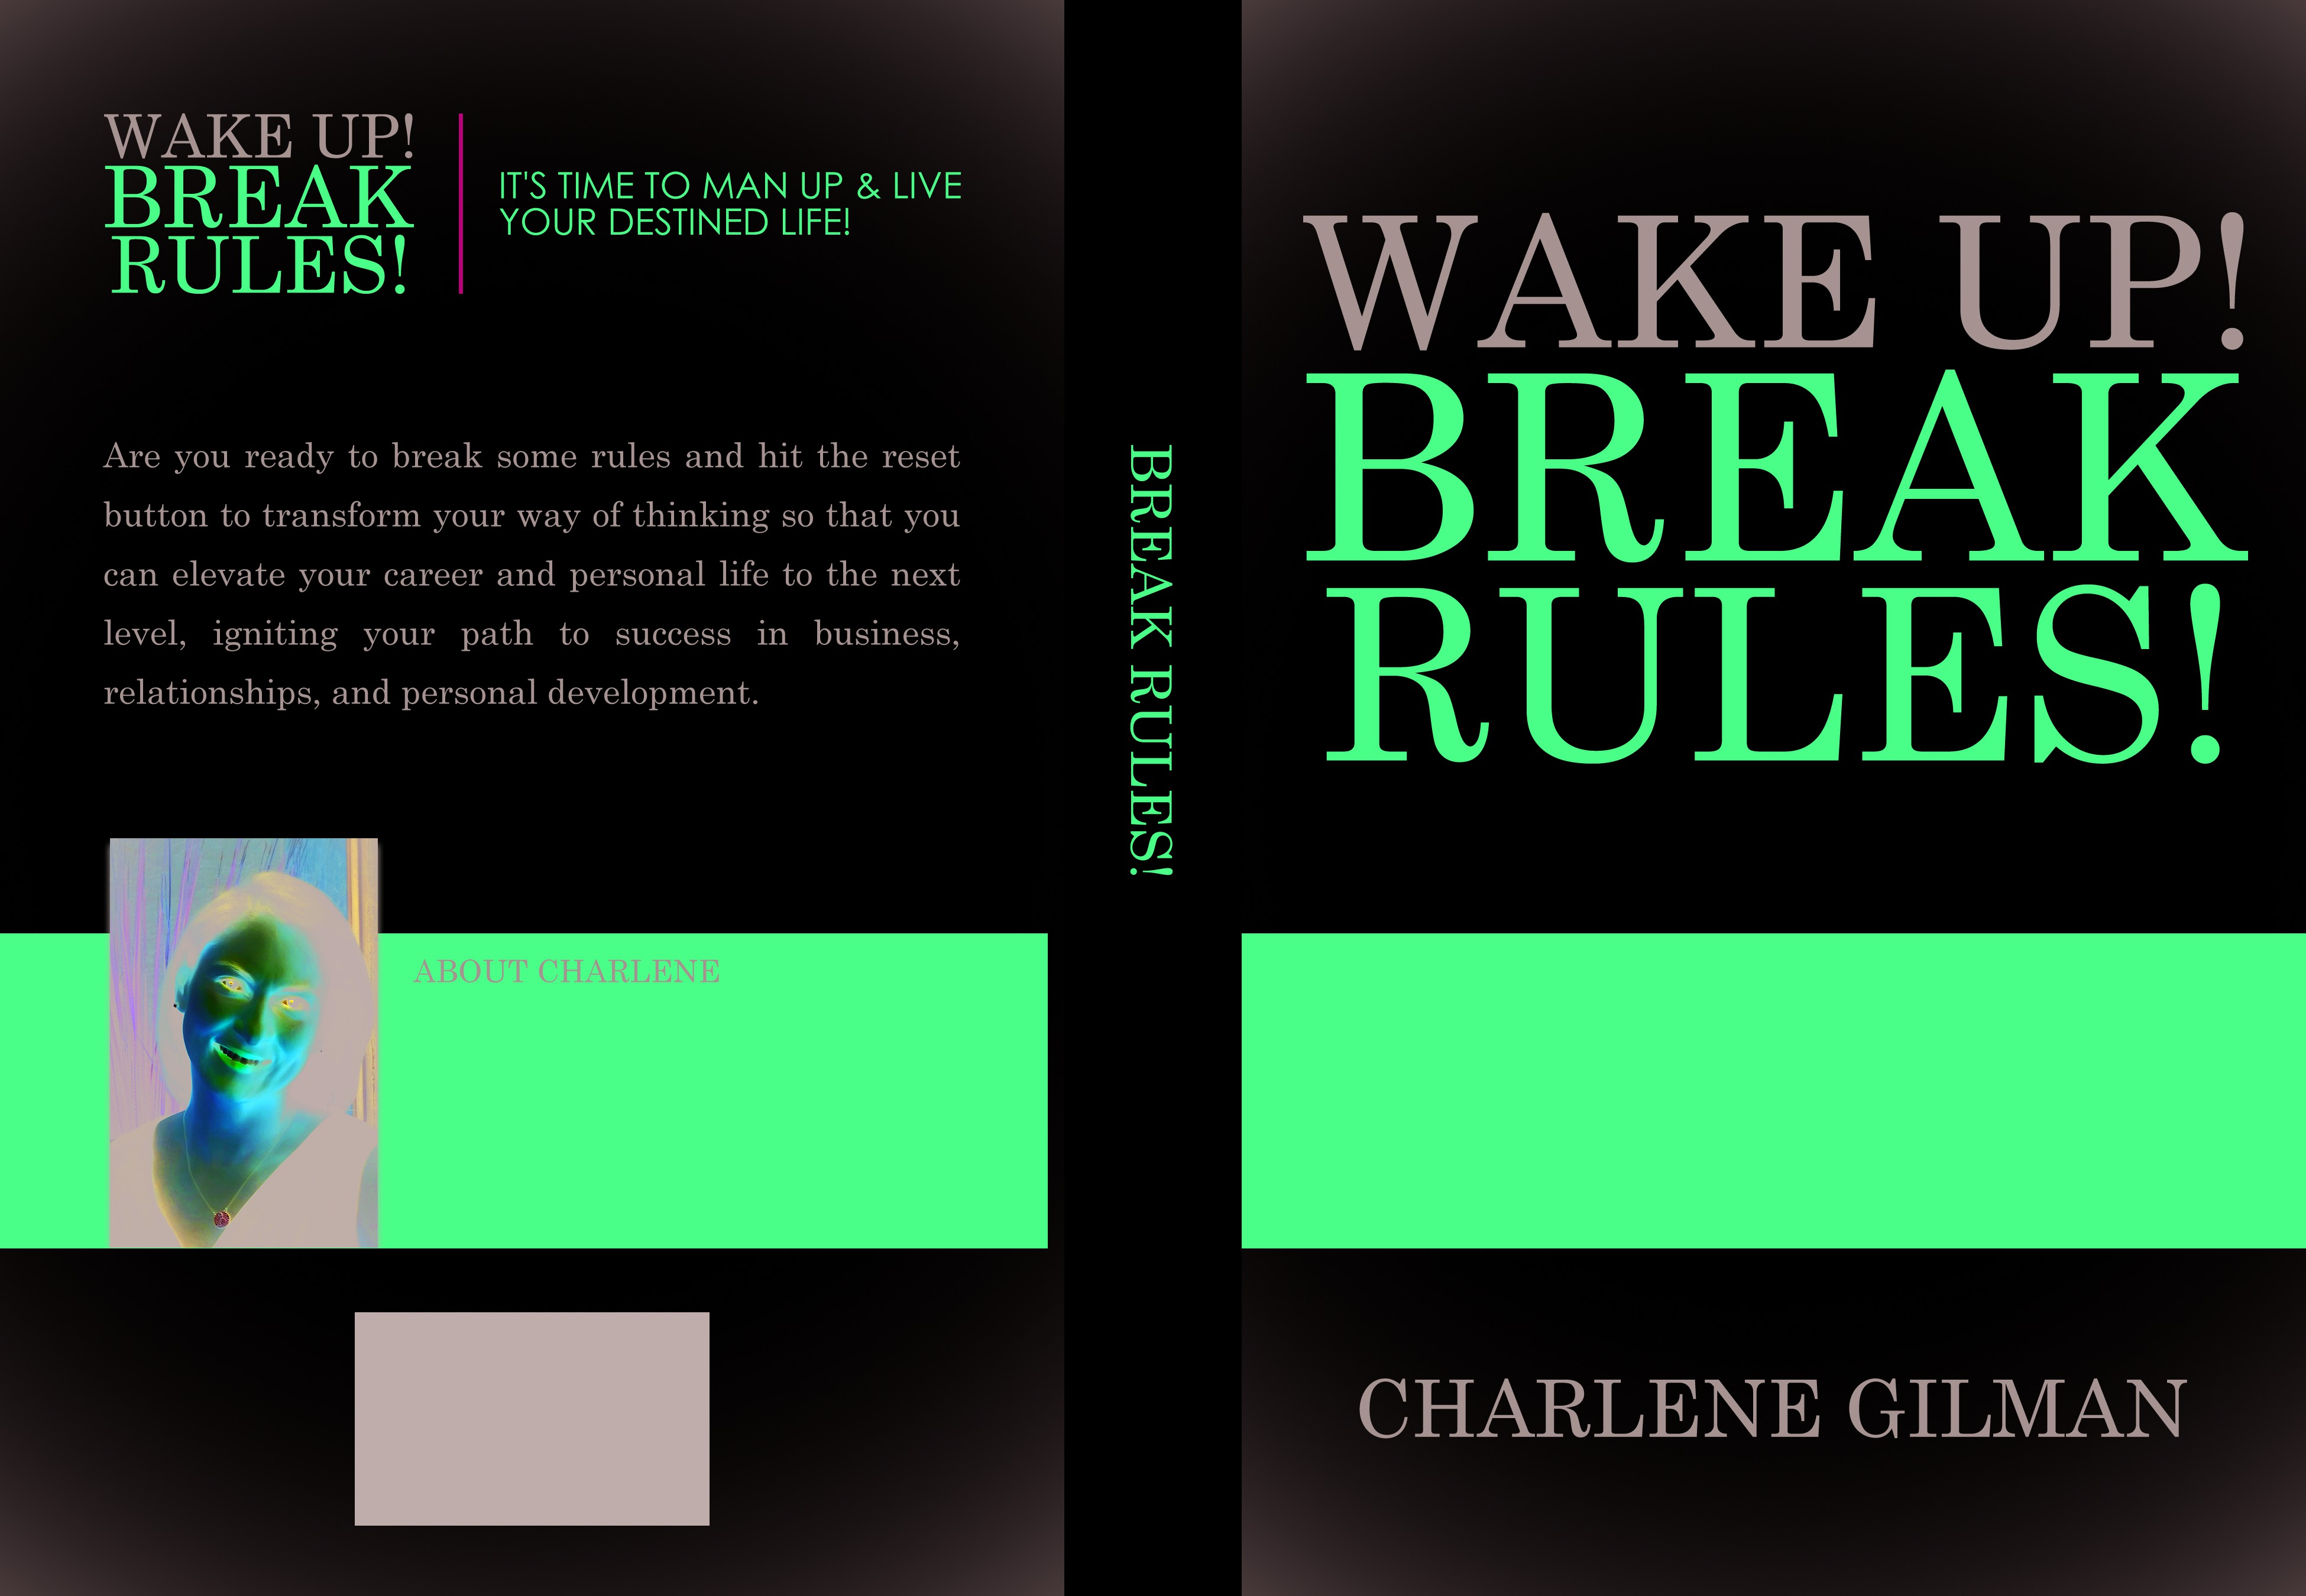 Create an attention grabbing Book Cover for WAKE UP! BREAK RULES!